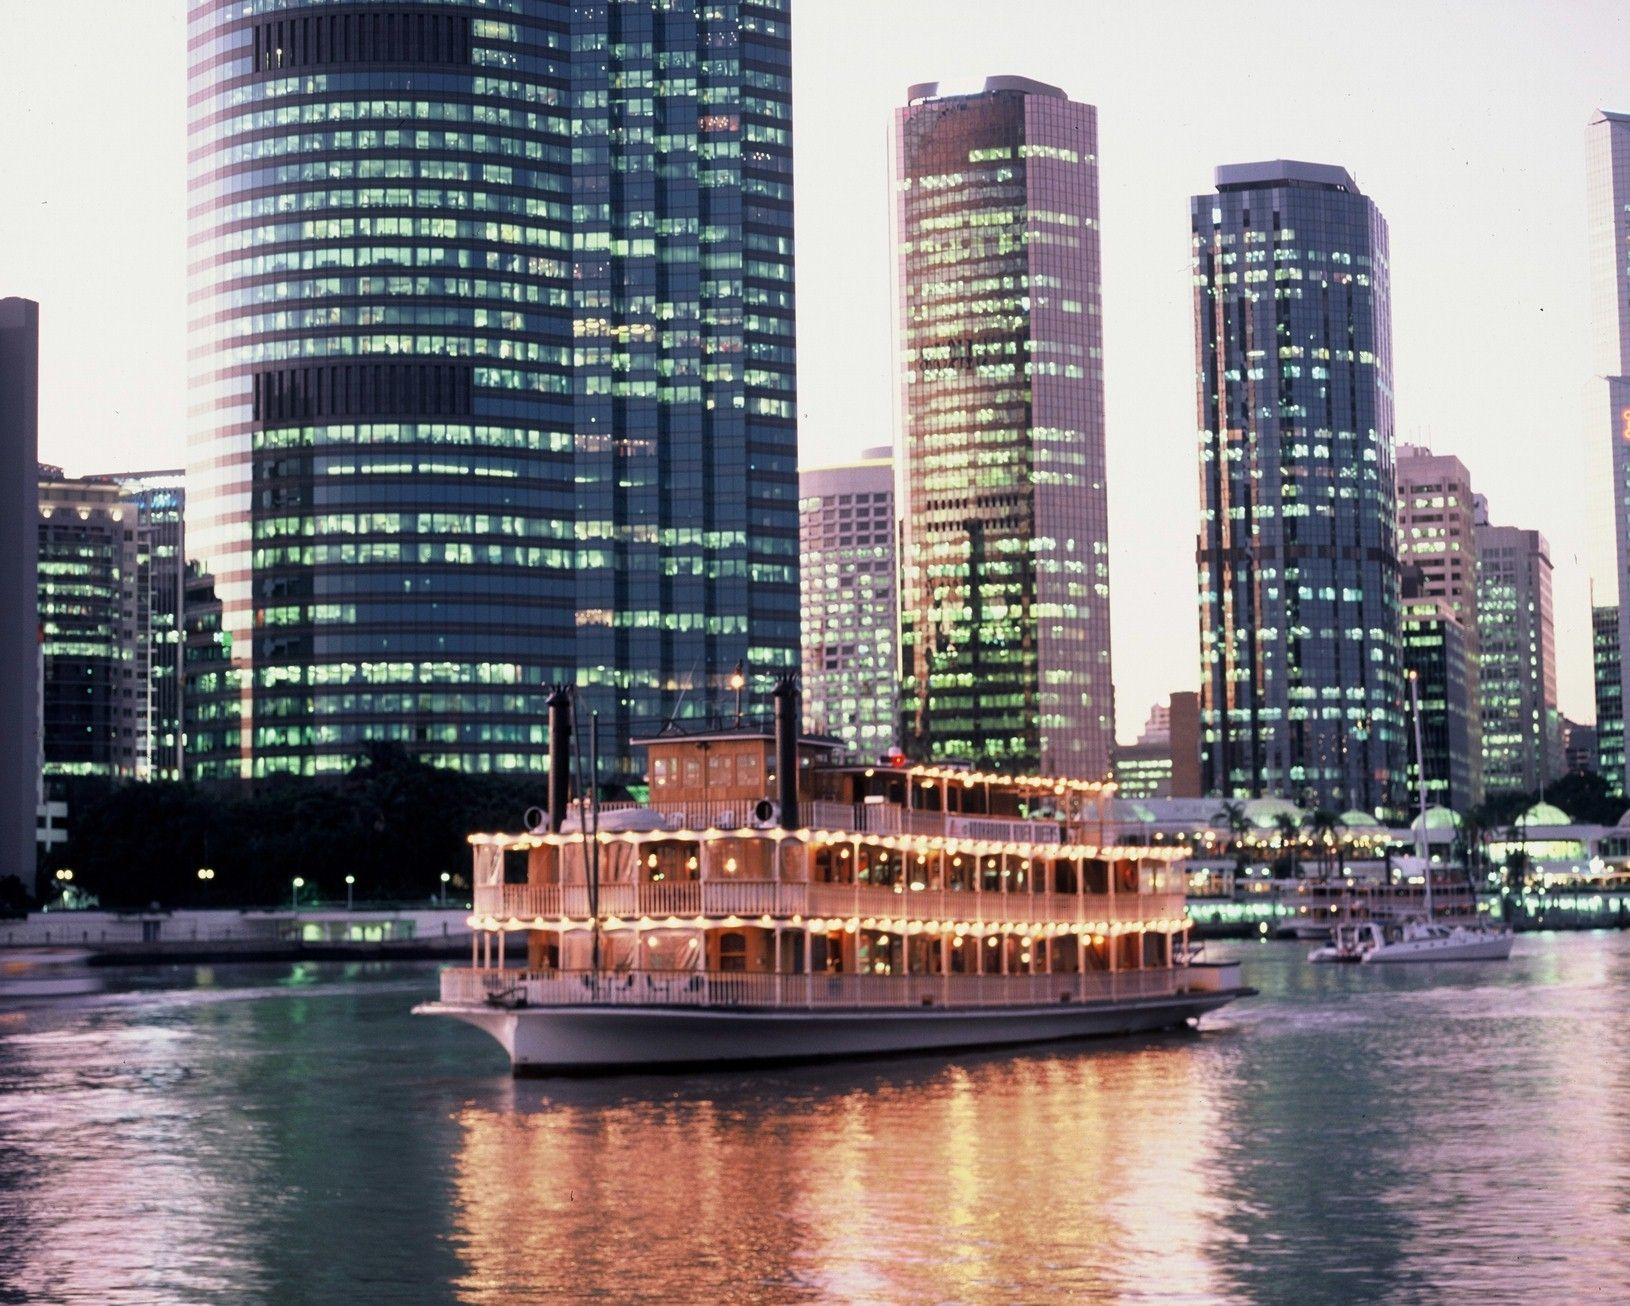 Beautiful City Lights! Kookaburra Showboat Cruises Shinning Bright Down The  Brisbane River! Visit The Website Now To See All The Possibilities You Can  Do ...